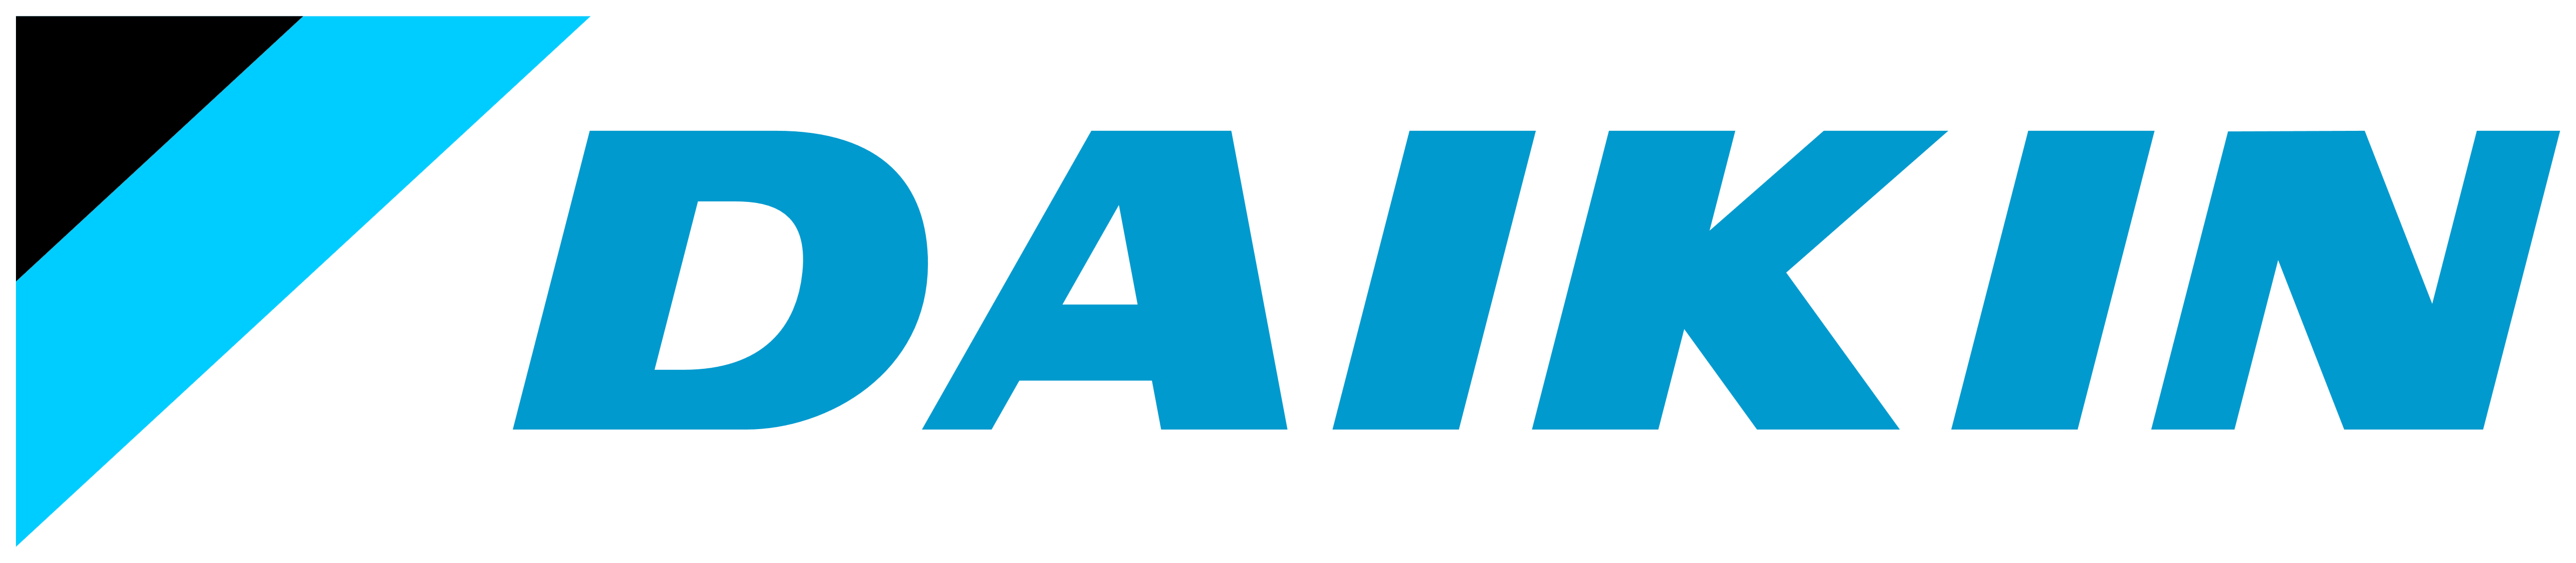 Daikin Logos Download